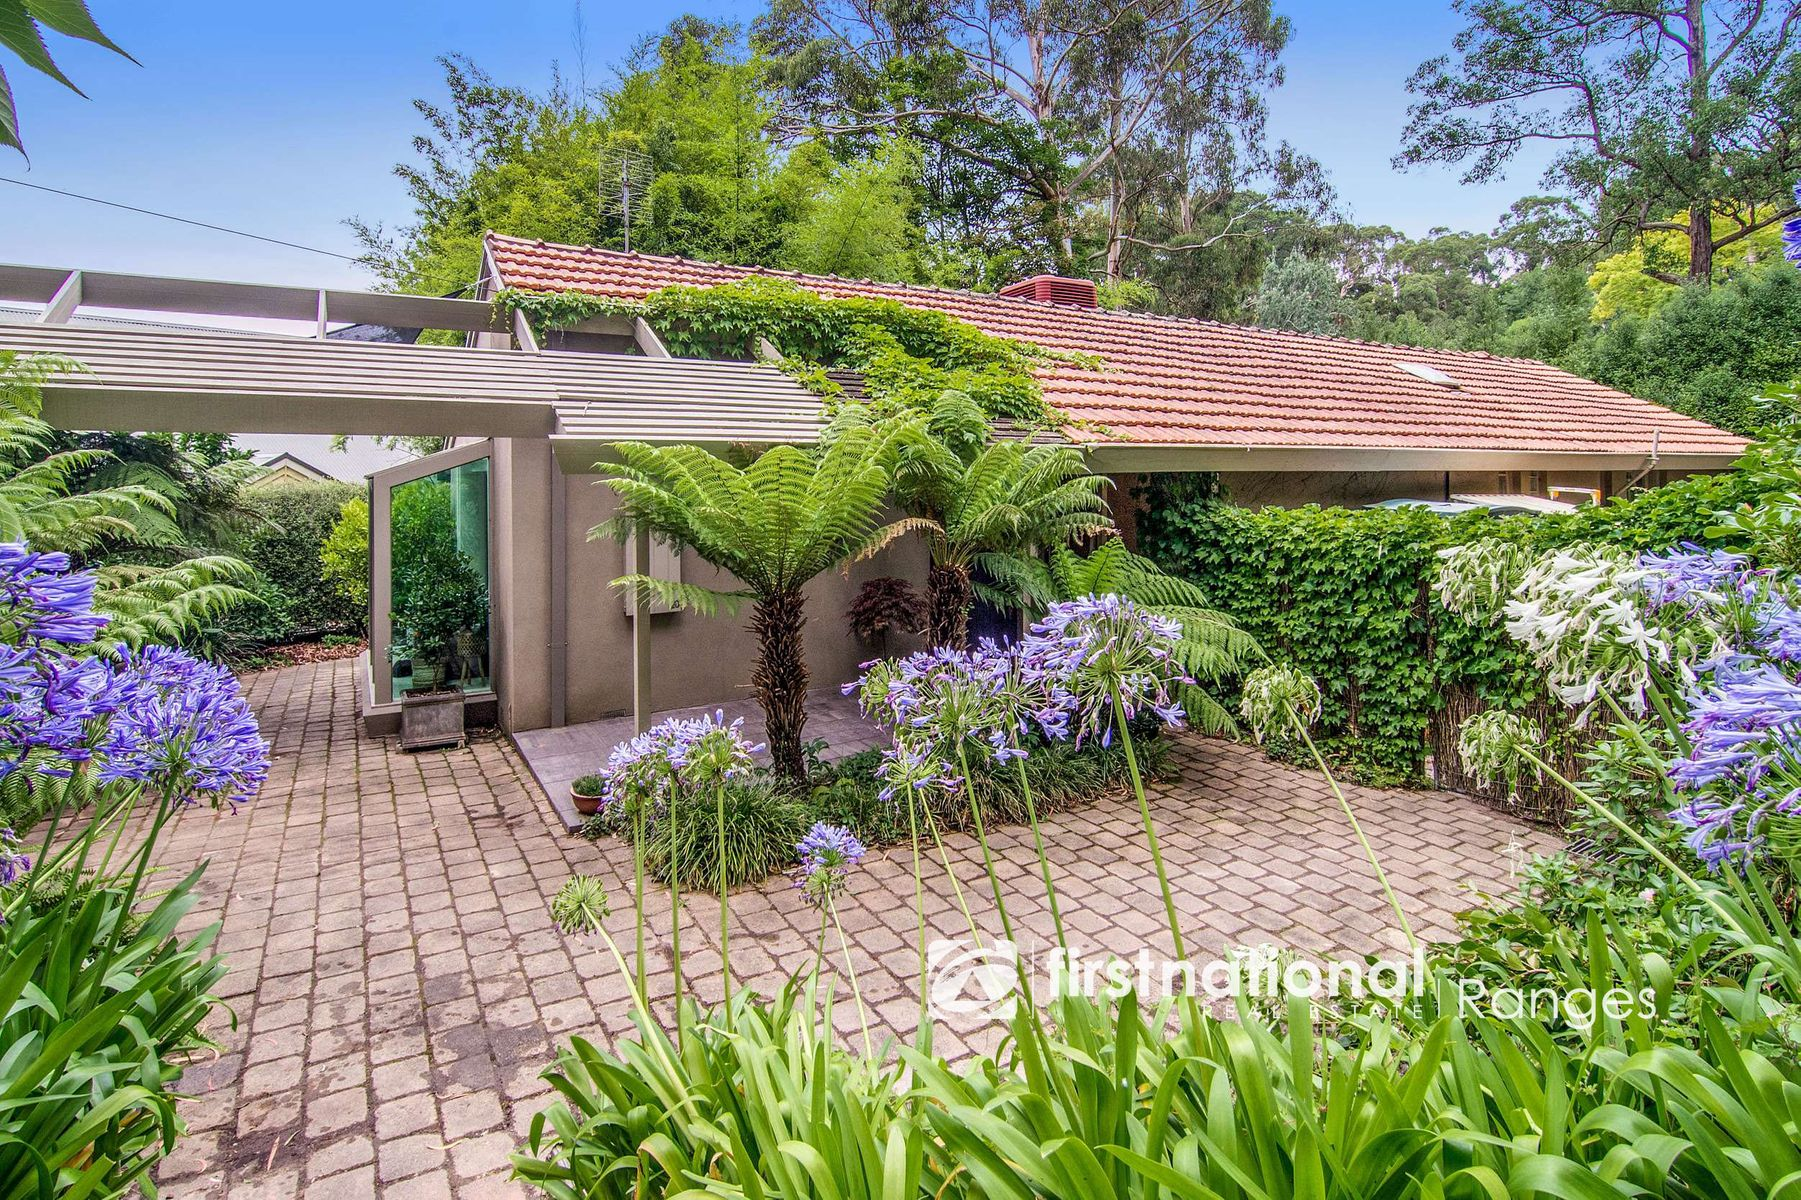 20 Oakland Avenue, Upwey, VIC 3158